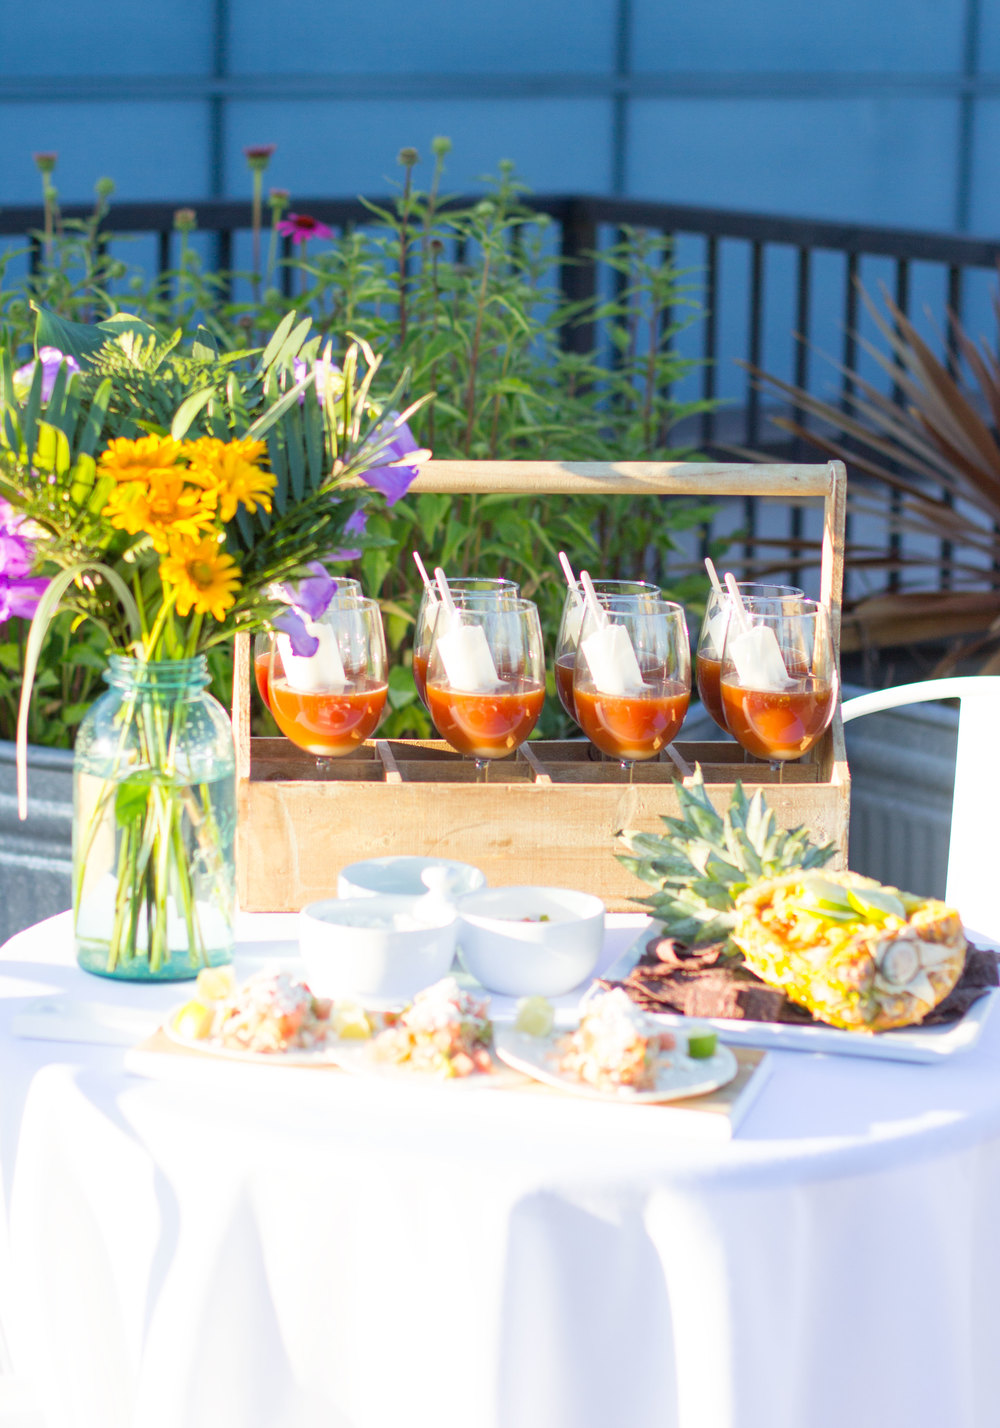 Summer BBQ ideas with Lipton tea, iced tea with lemon popsicles, pulled chicken tacos, and pineapple salsa! Sponsored pin.